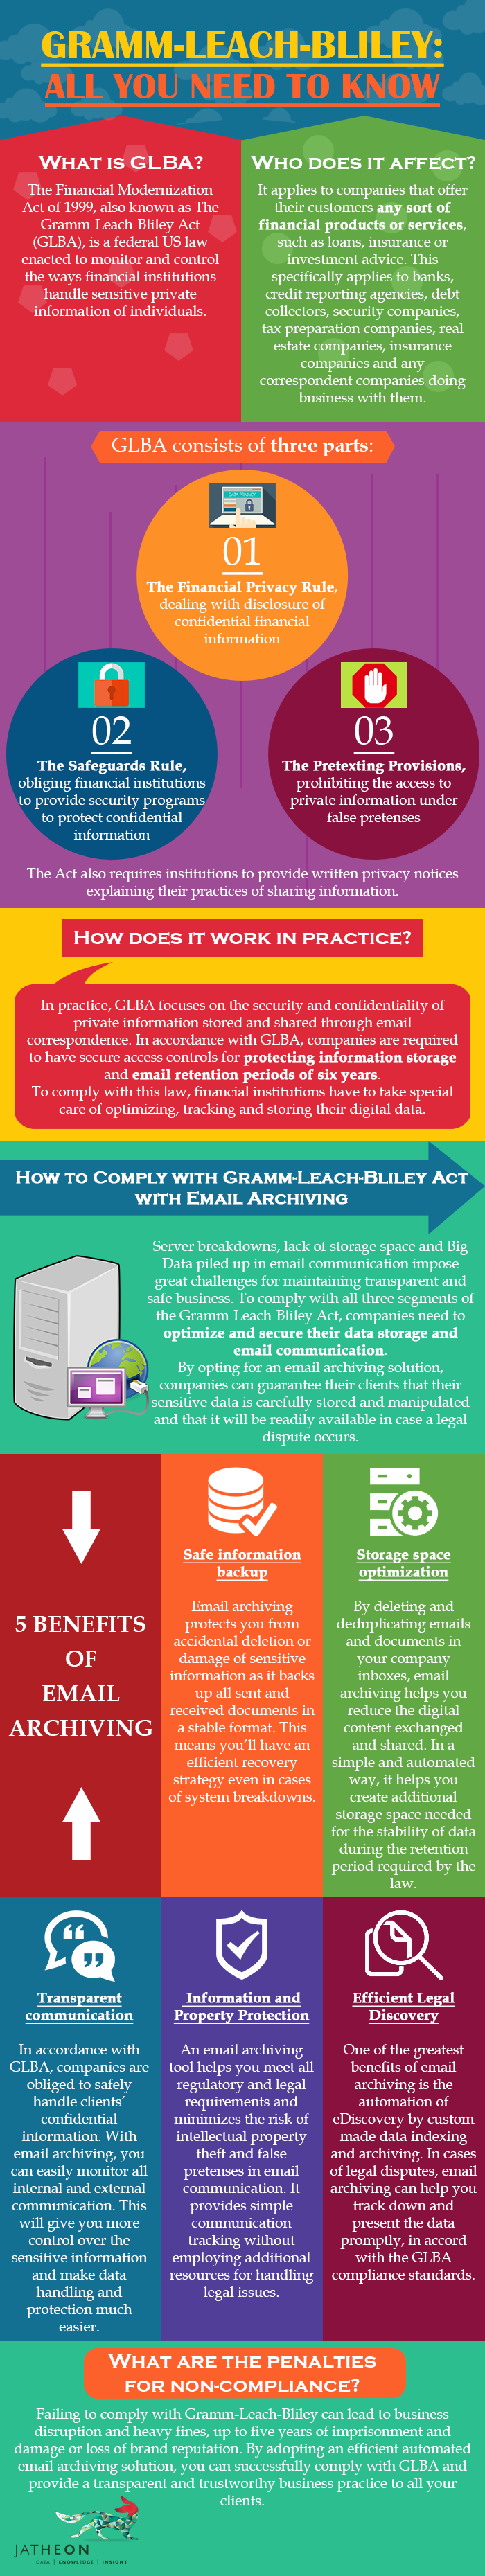 Gramm-Leach-Bliley: All You Need to Know [infographic]